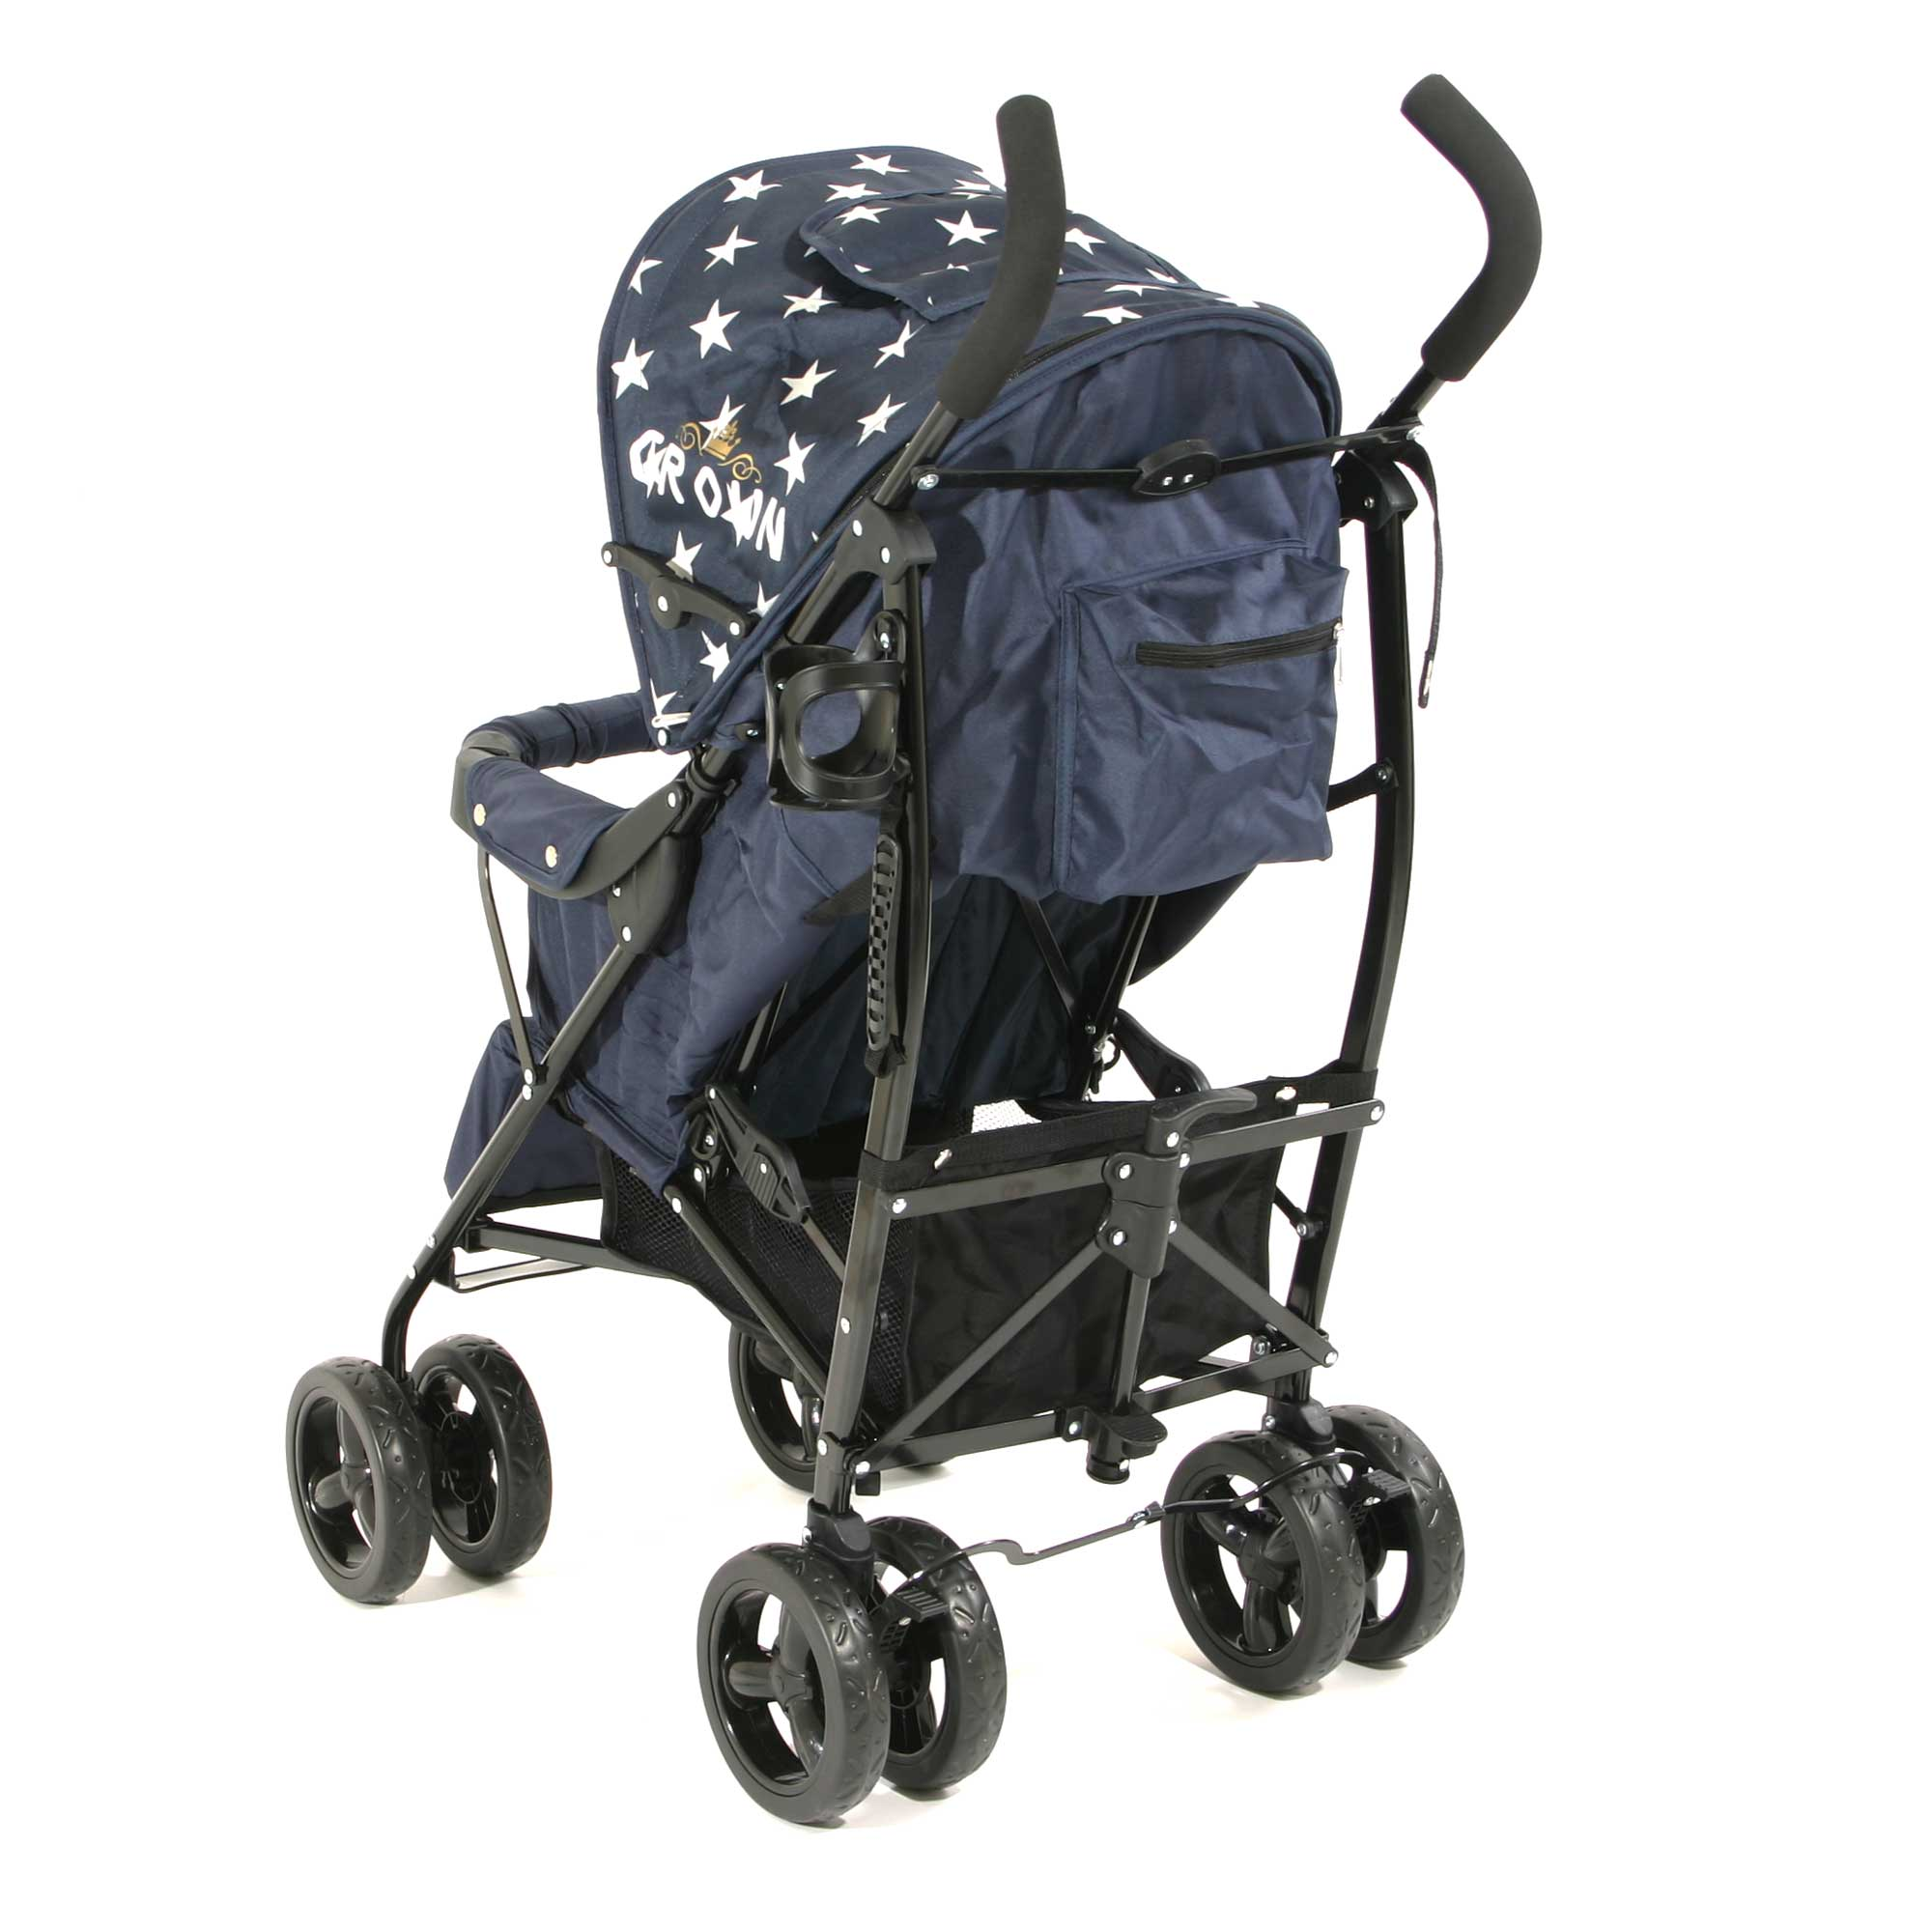 Crown Buggy Räder St520 – Crown Kinderwagen